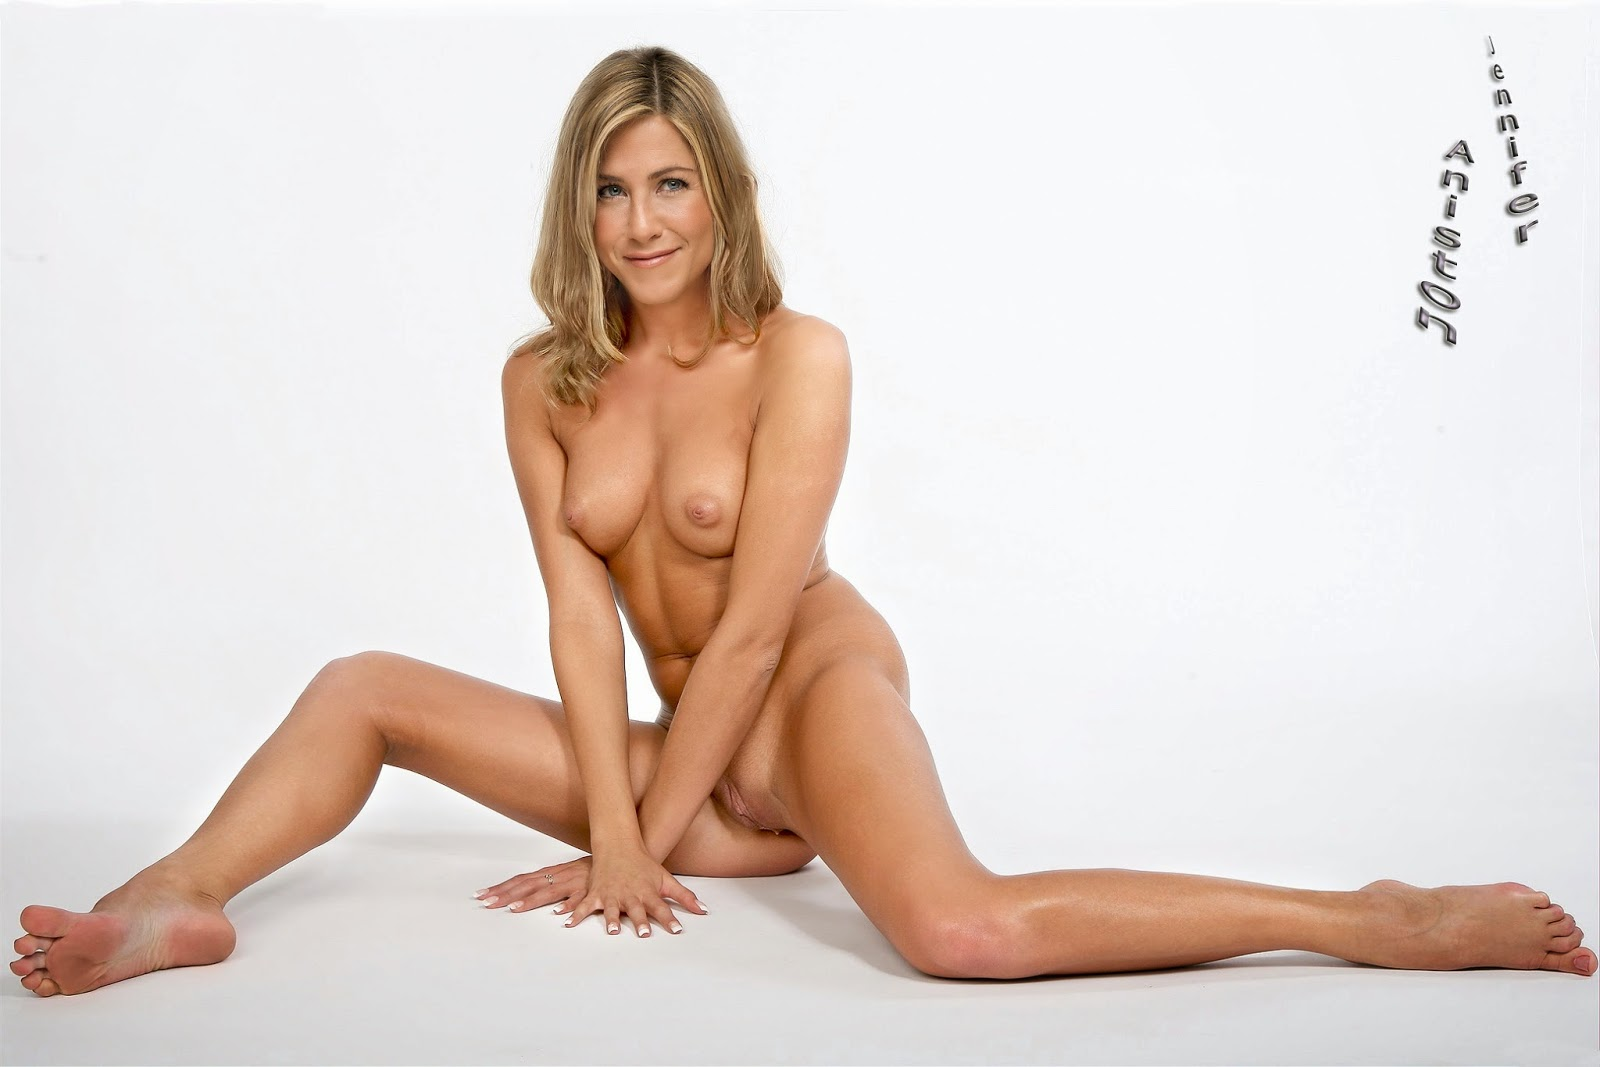 Aniston naked and